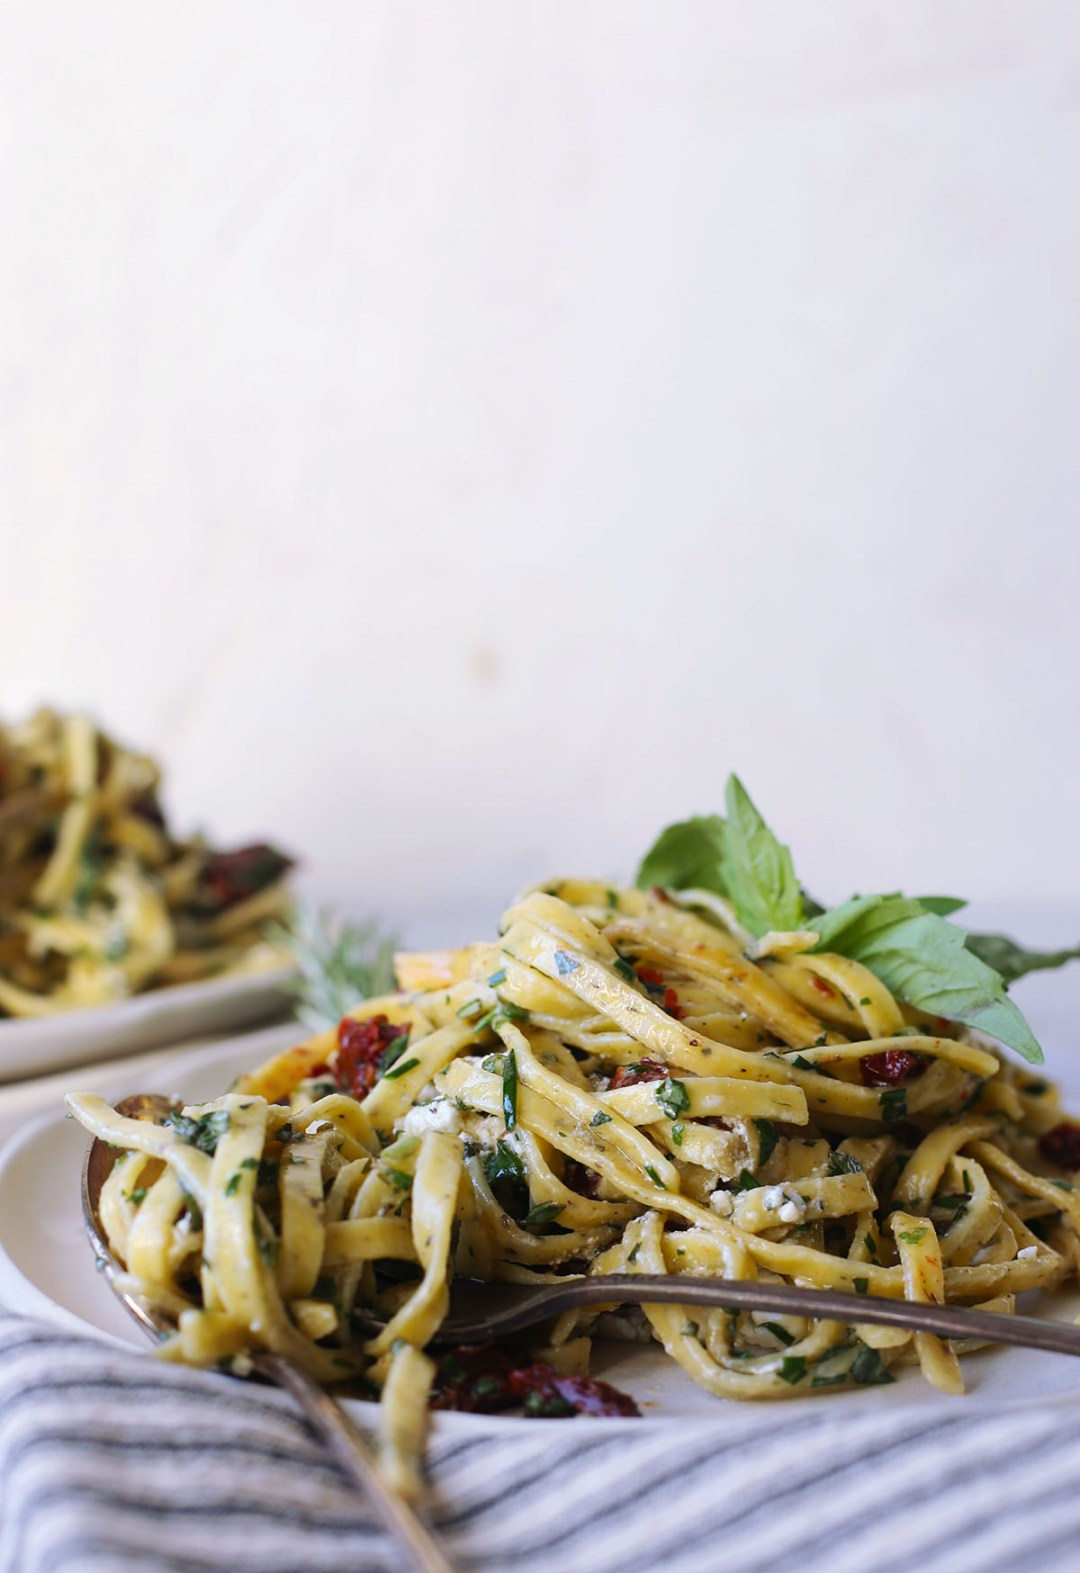 Sun Dried Tomato and Goat Cheese Pasta in a Butter Herb Sauce